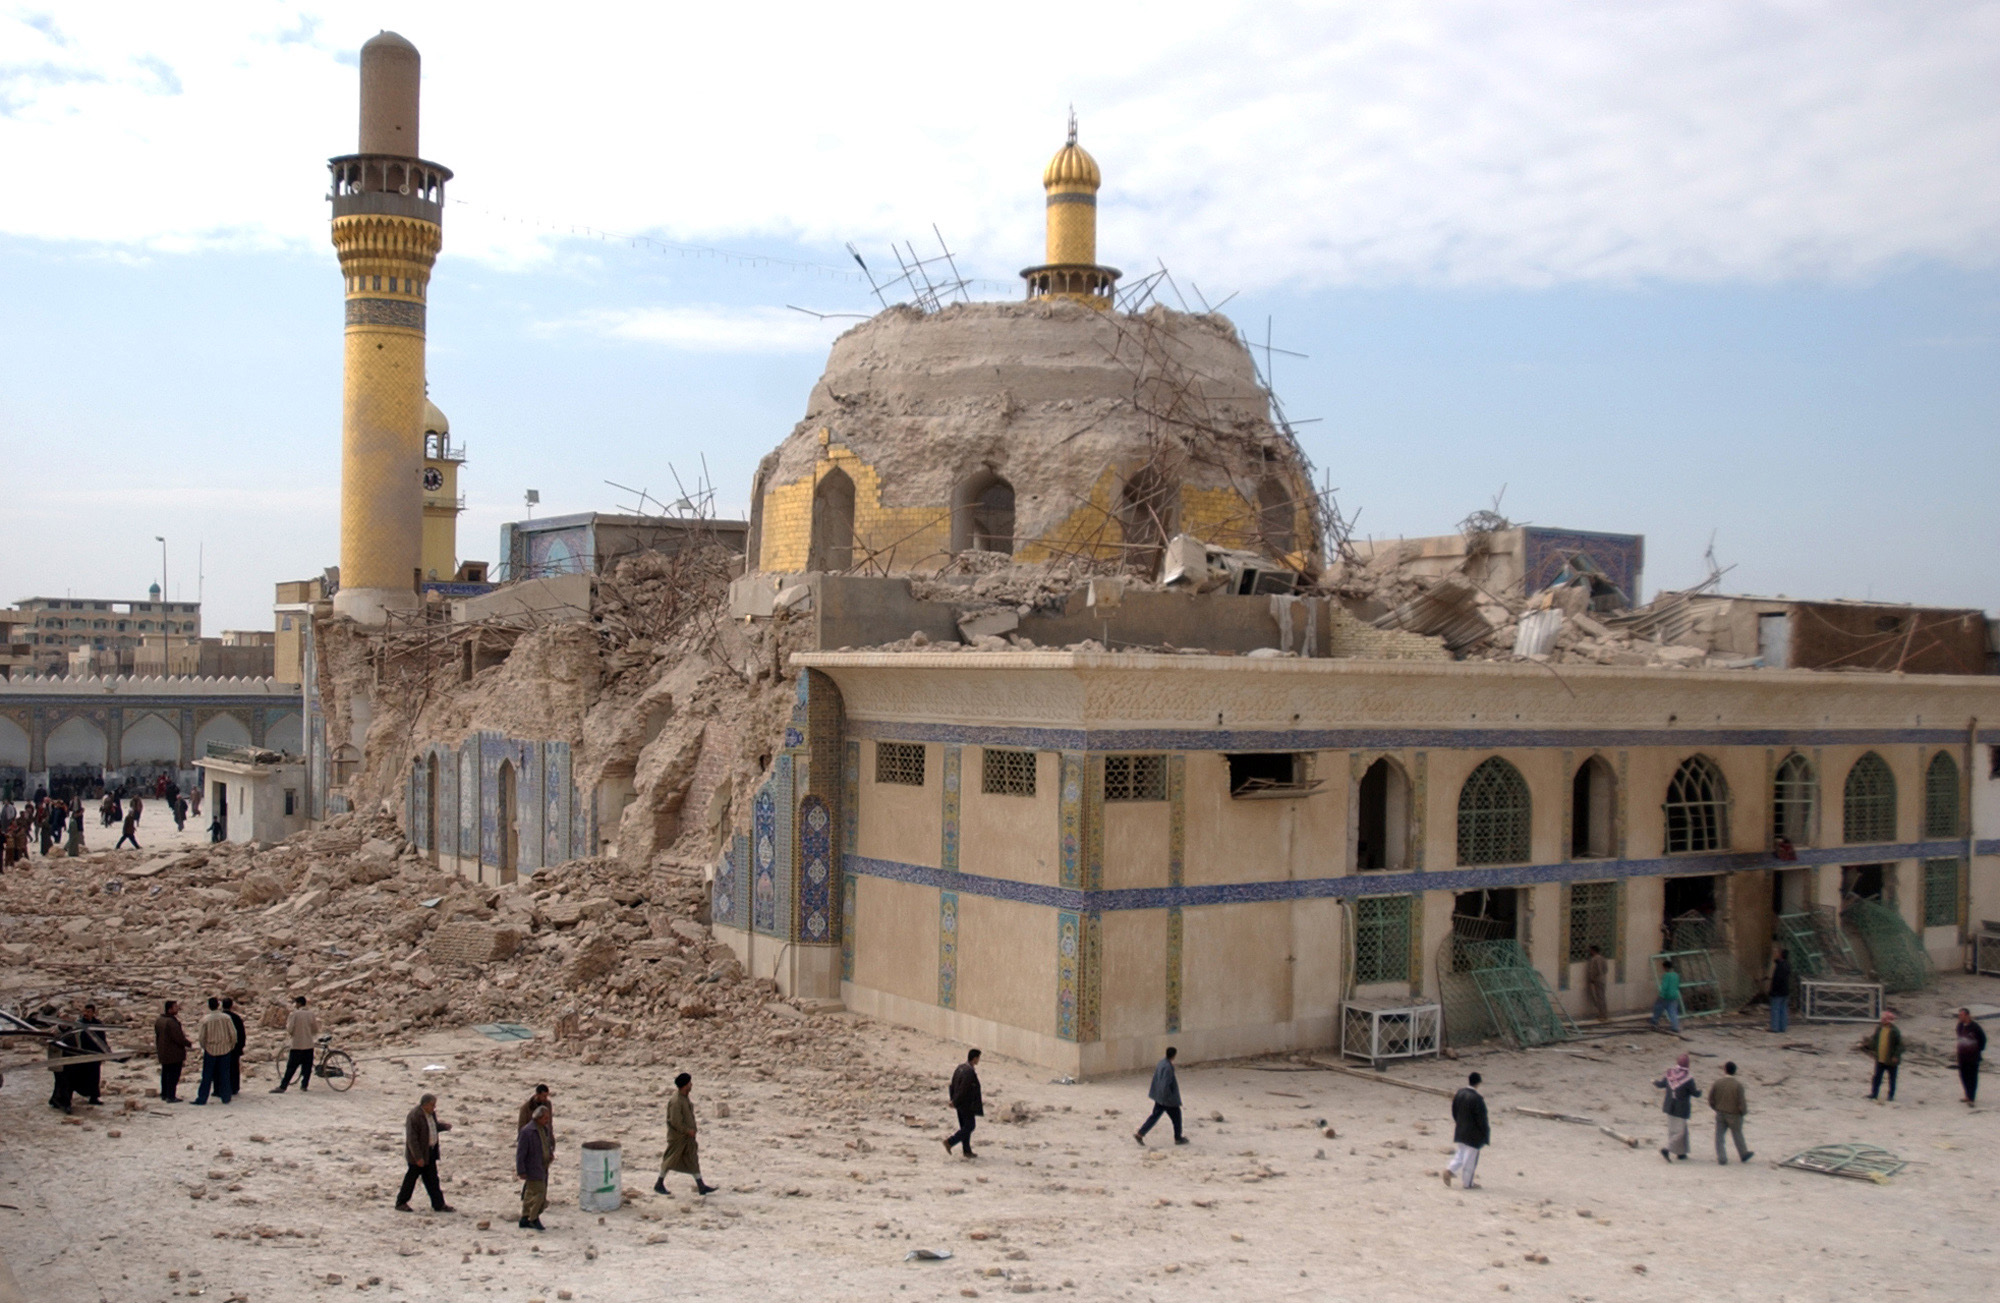 Iraqis walk past the damaged al-Askari mosque following an explosion in Samarra, 95 kilometers (60 miles) north of Baghdad, Iraq on Feb. 22, 2006.